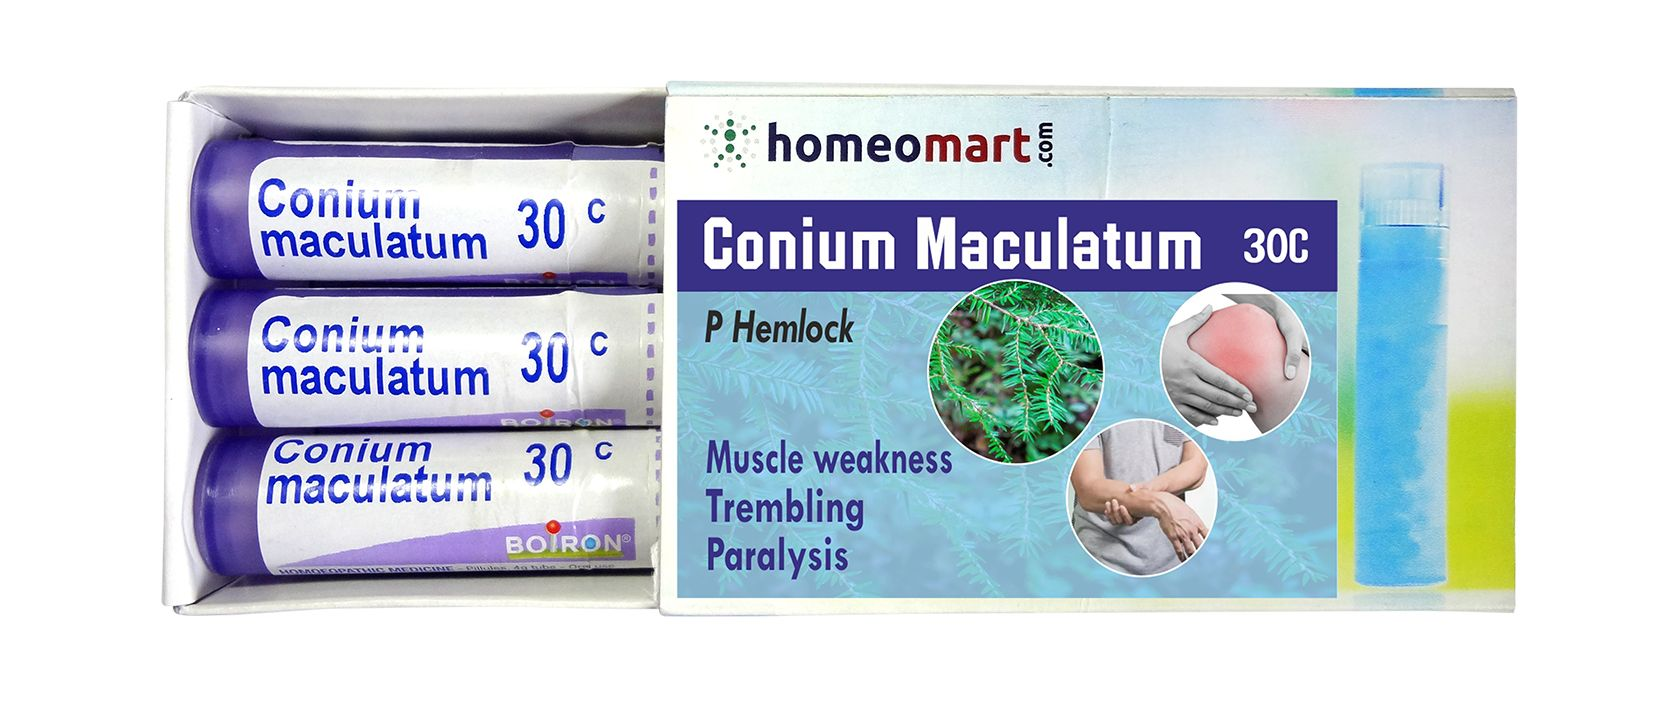 Homeopathy Conium Maculatum Remedy Kit for Trembling